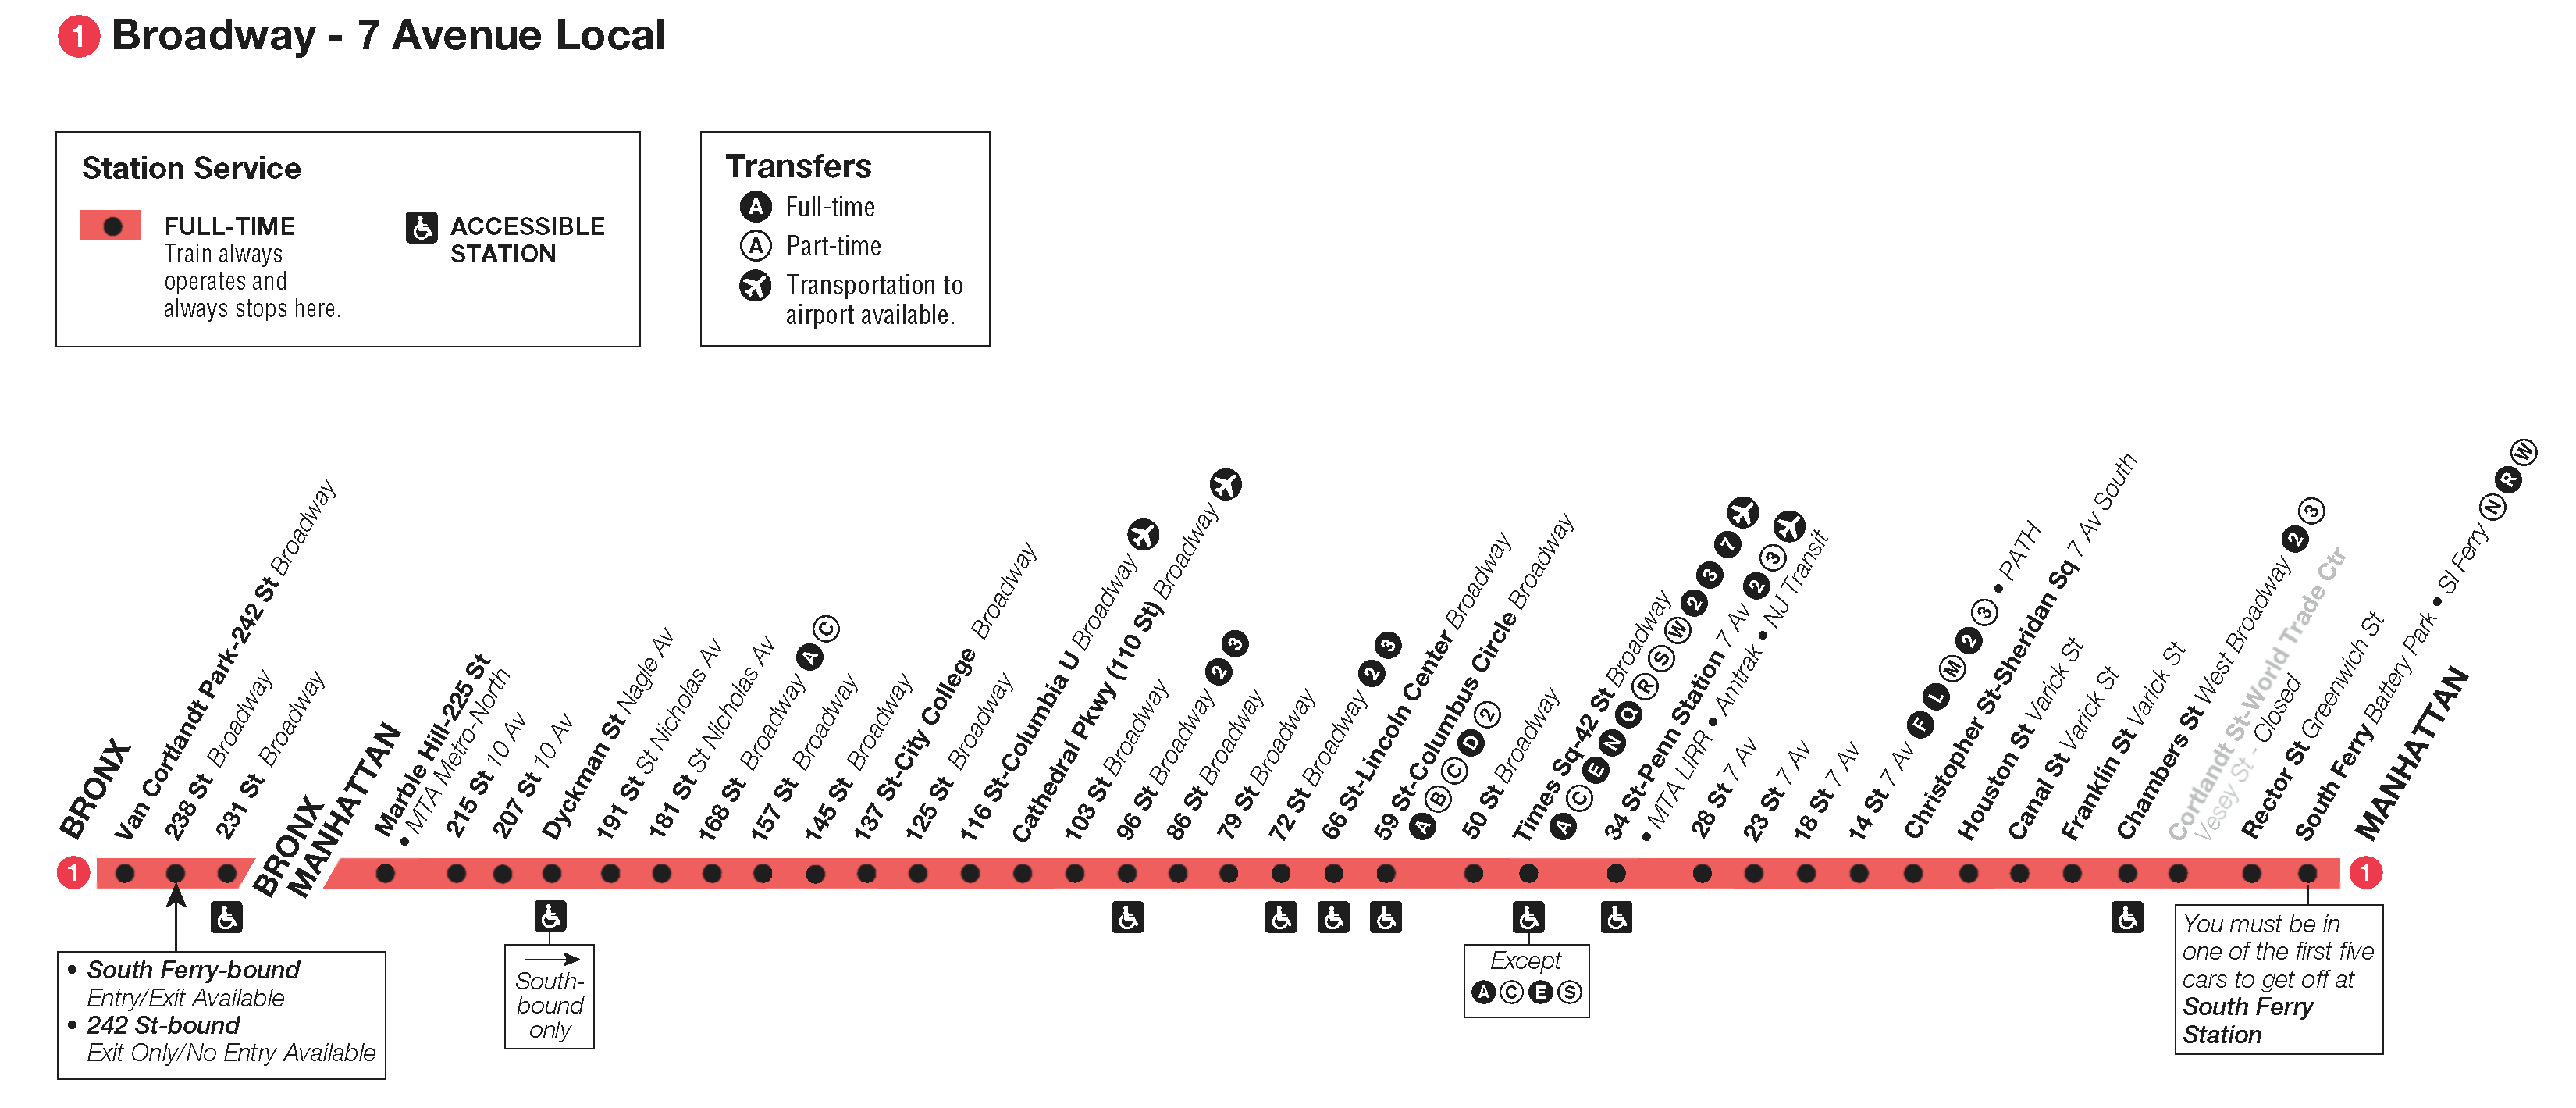 nyc-metro-route-1-broadway-7th-avenue-local-map